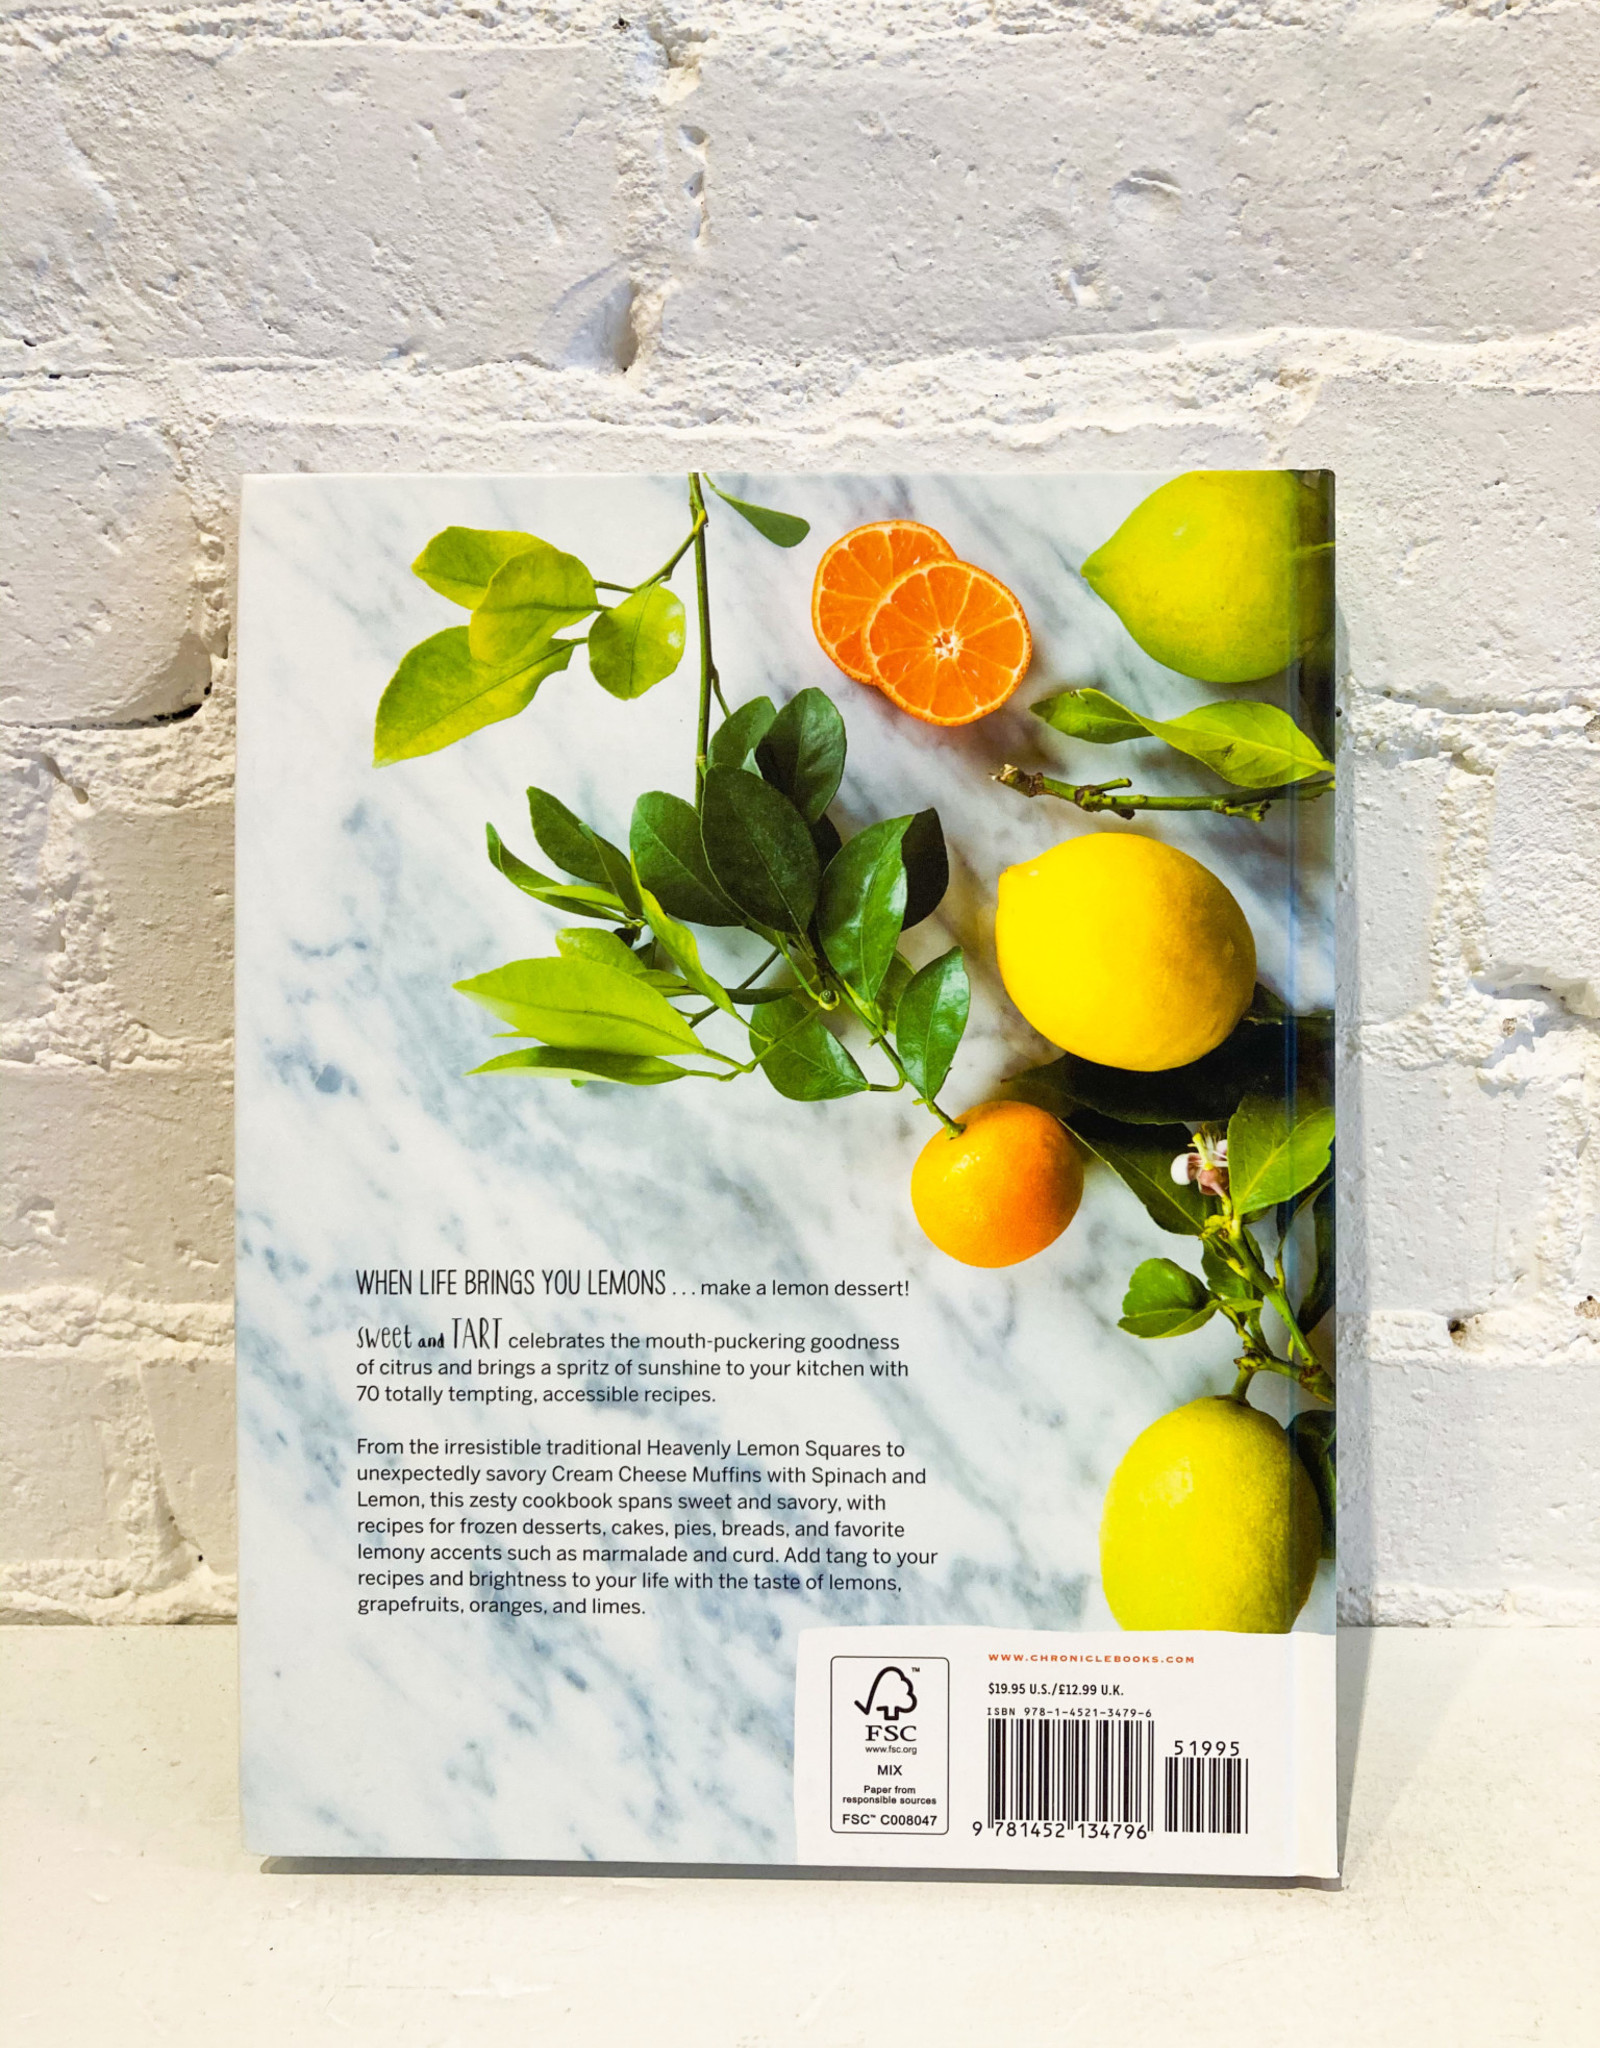 Sweet and Tart: 70 Irresistible Recipes With Citrus by Carla Snyder